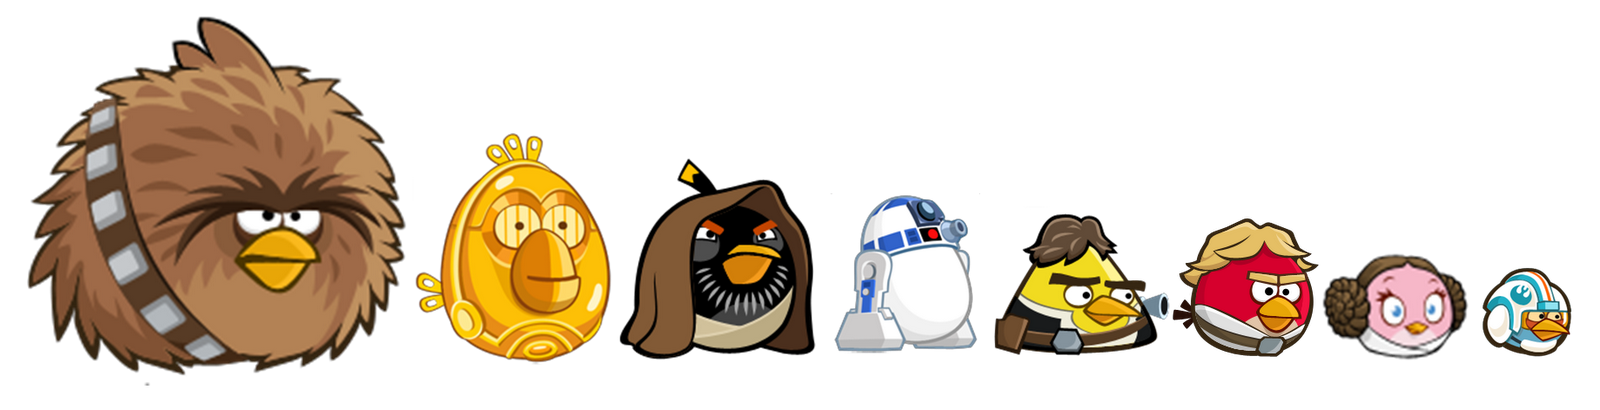 gamedroid angry birds star wars goods and bads. Black Bedroom Furniture Sets. Home Design Ideas